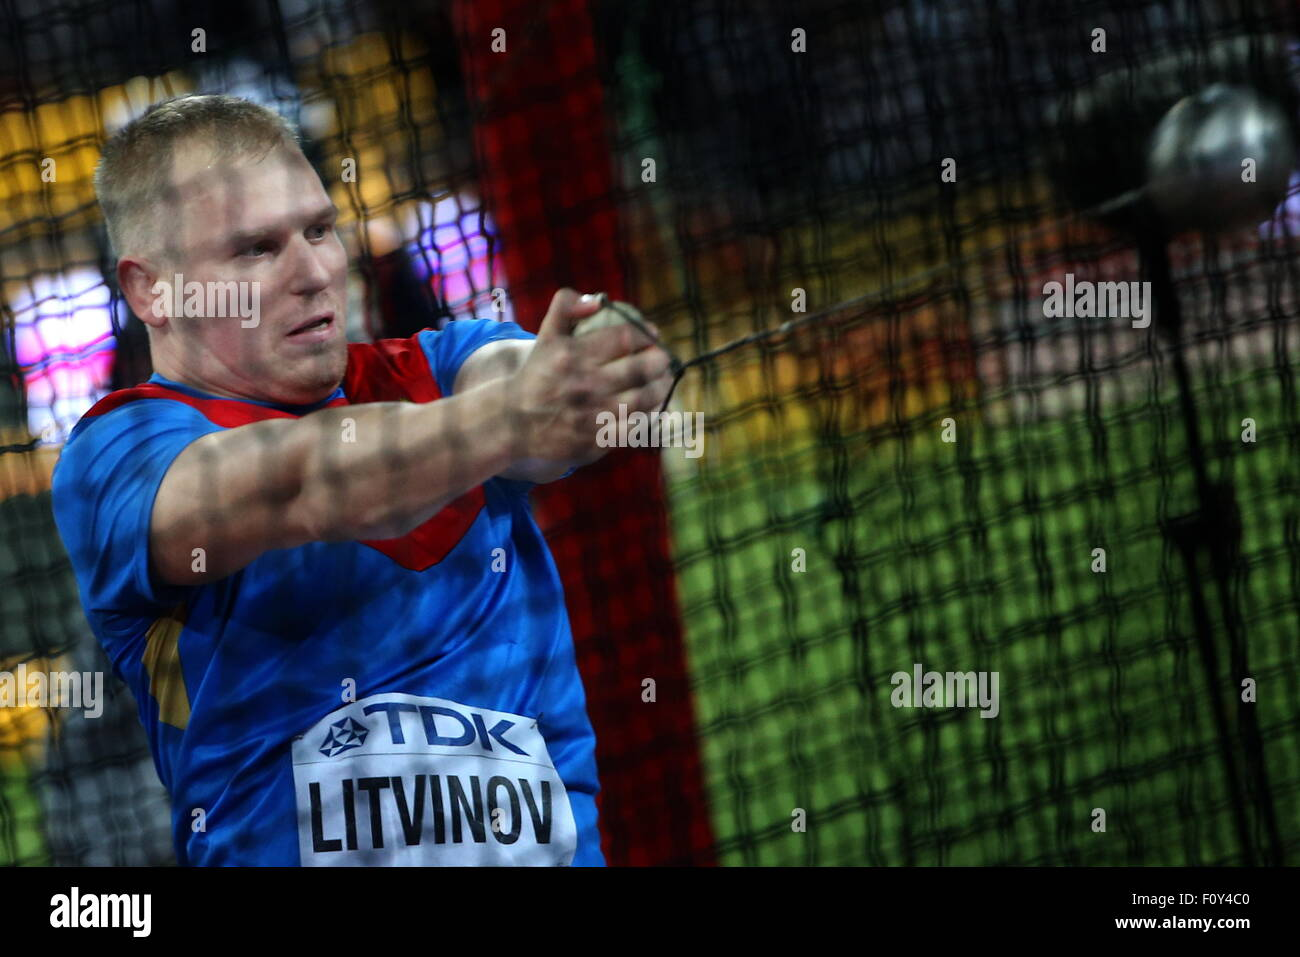 Beijing, China. 23rd Aug, 2015. Russia's Sergej Litvinov competes in the men's hammer throw final on Day - Stock Image